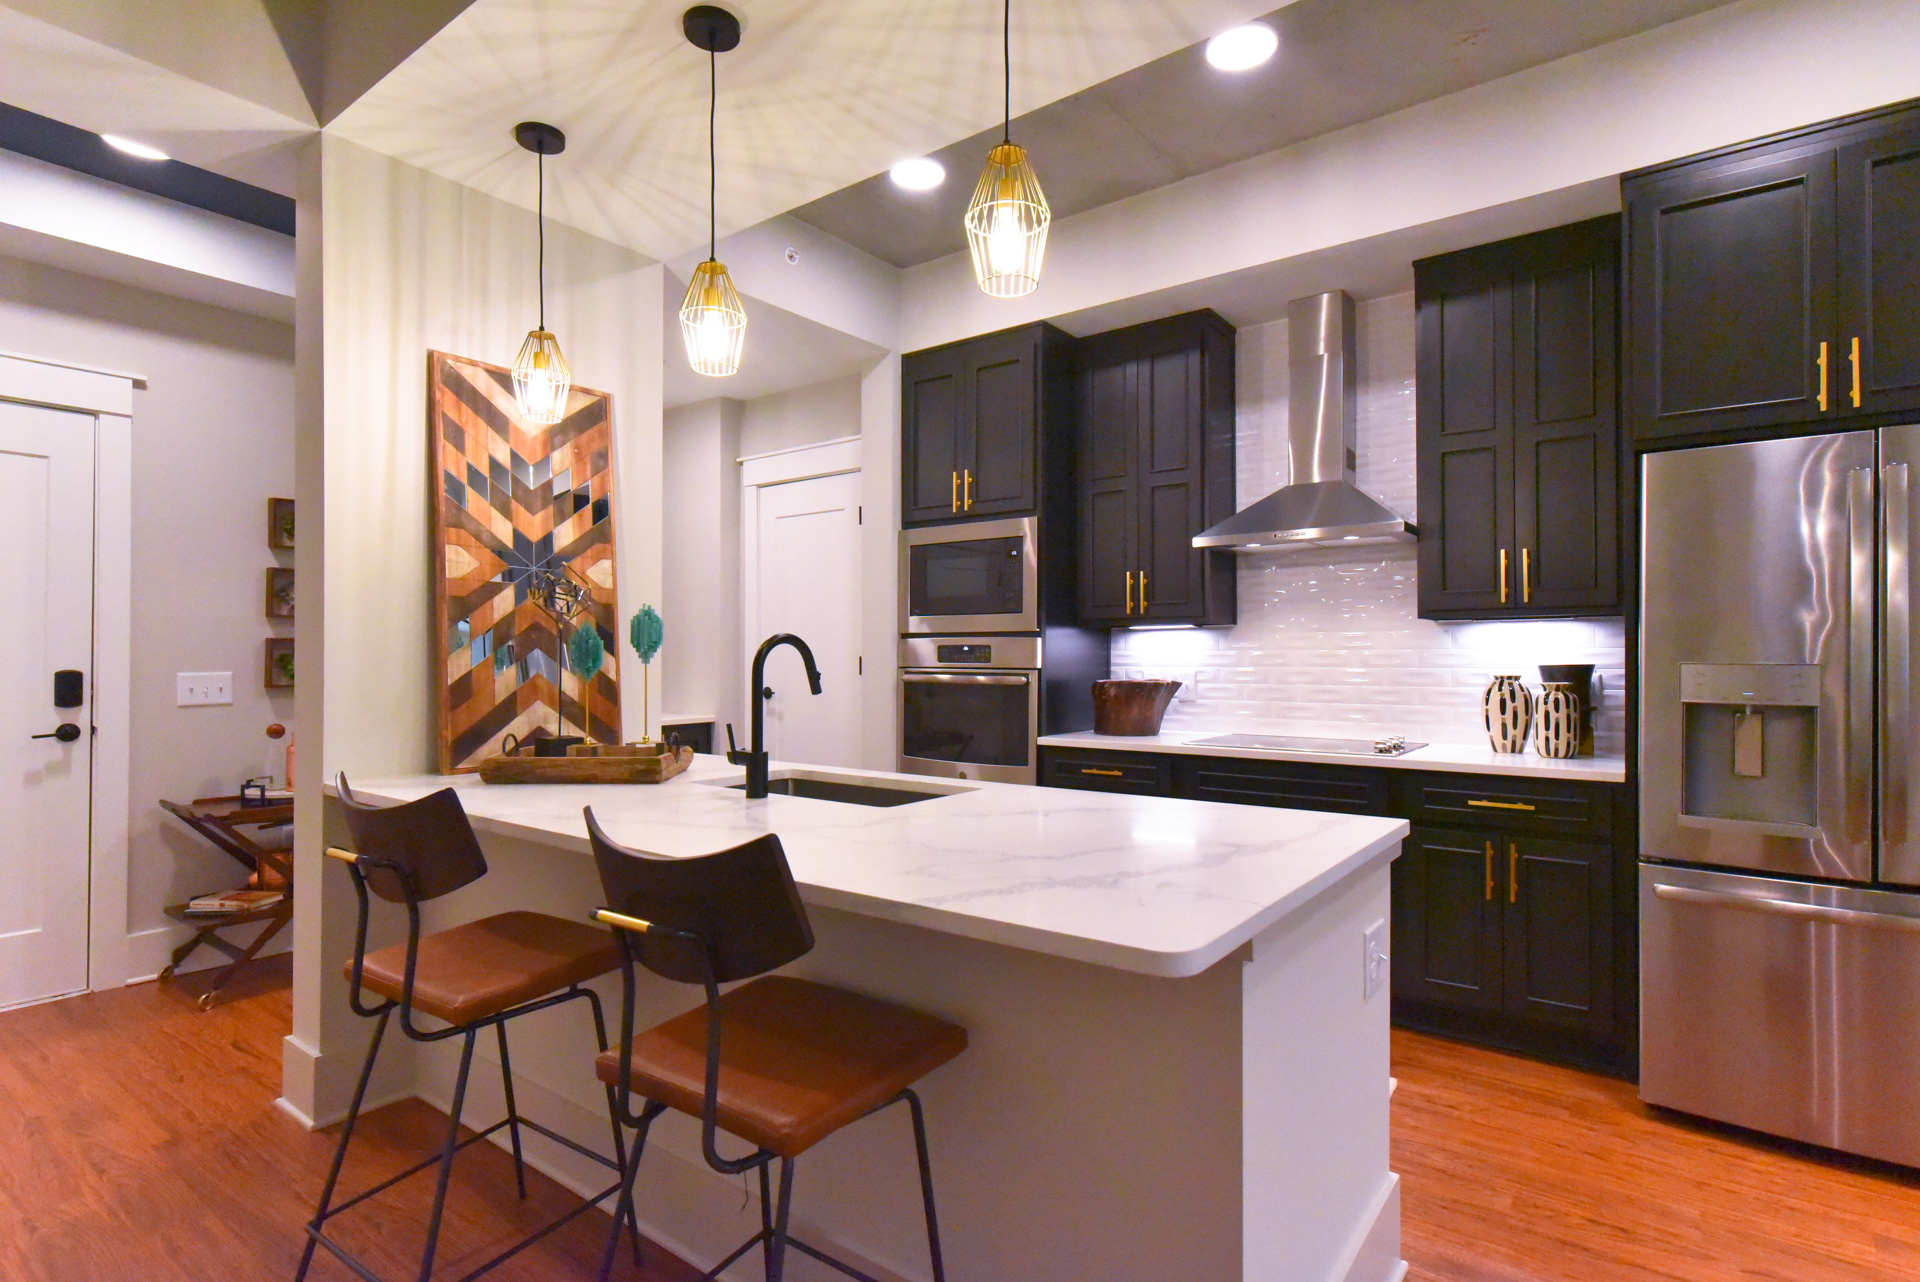 500 West Trade Apartment Features